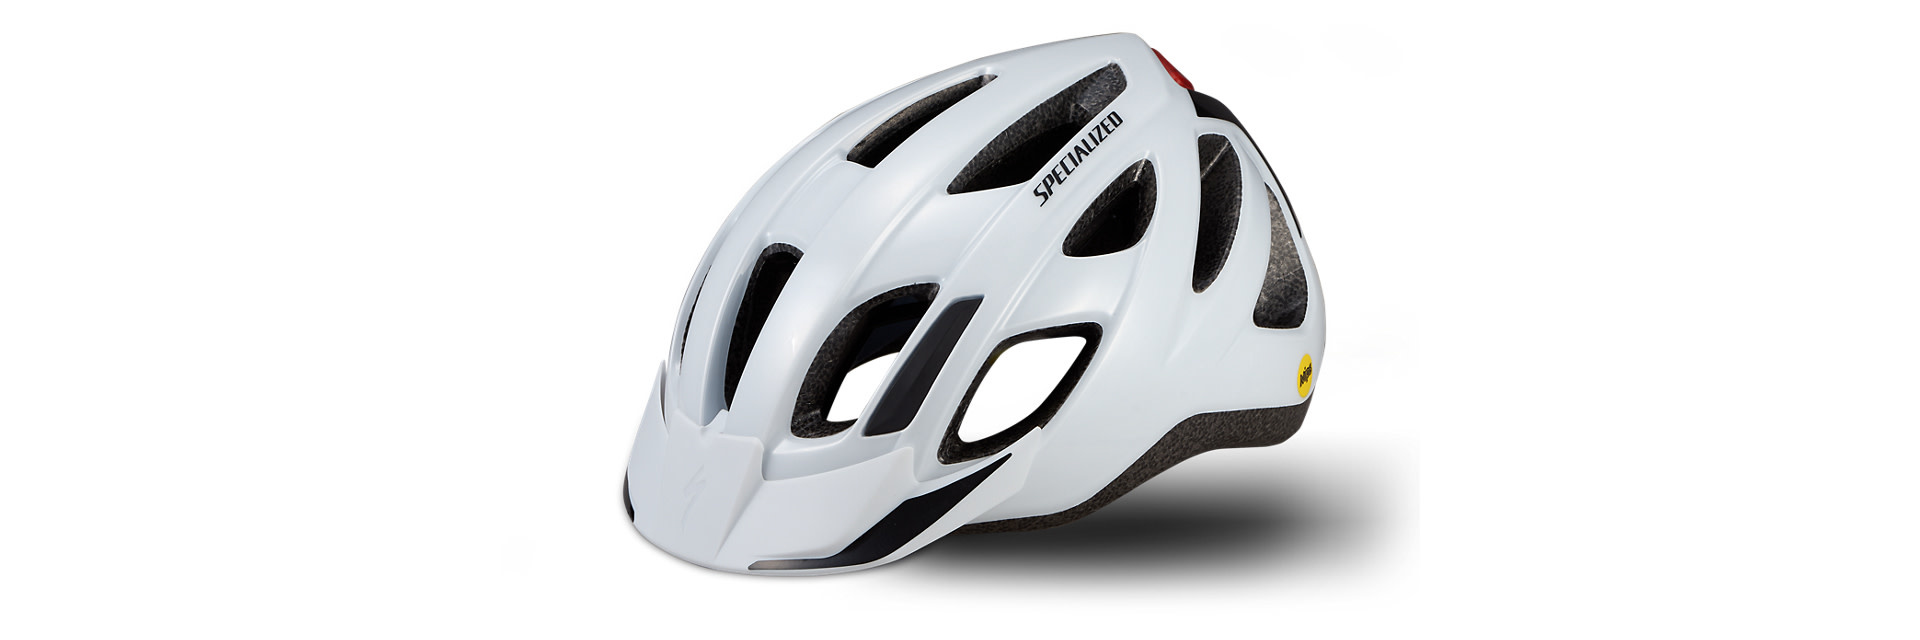 Specialized Helmet Centro LED Mips White